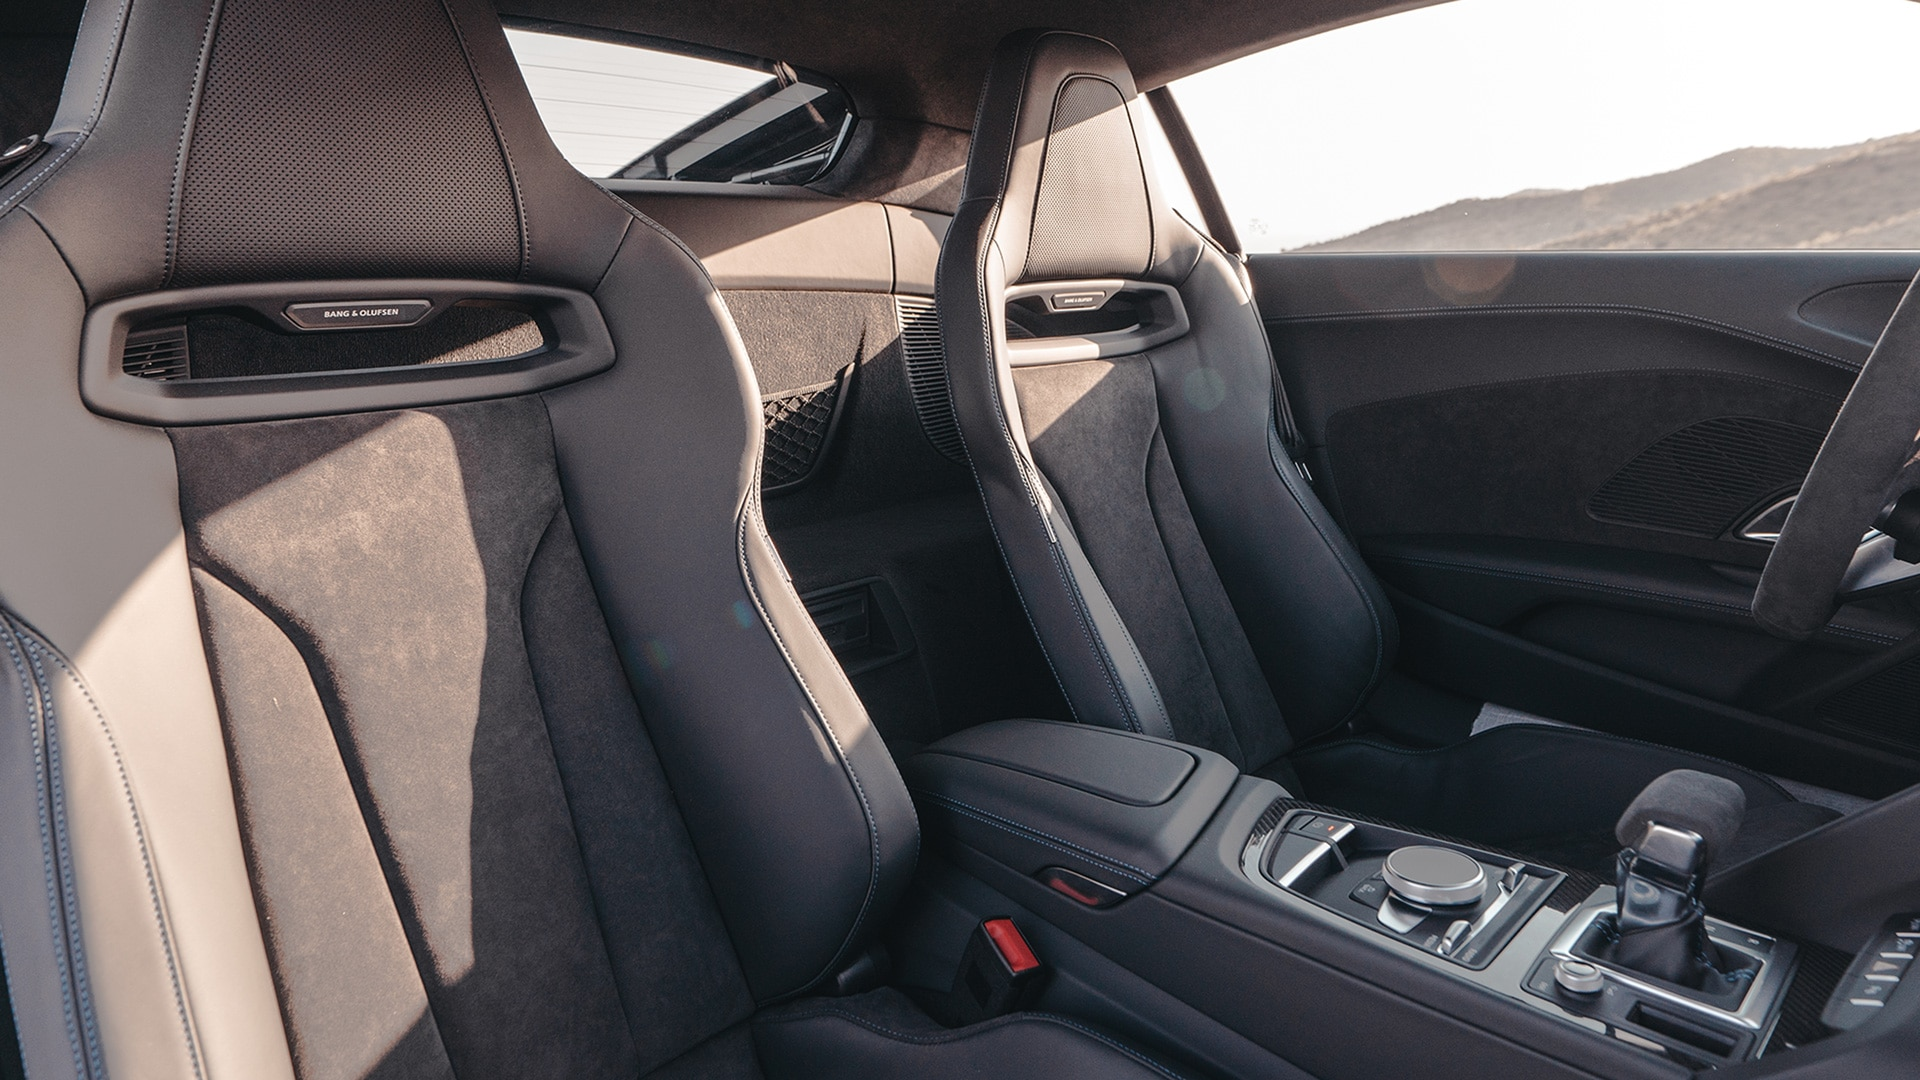 The new look of the Audi R8 also includes the interior focused on the driver.